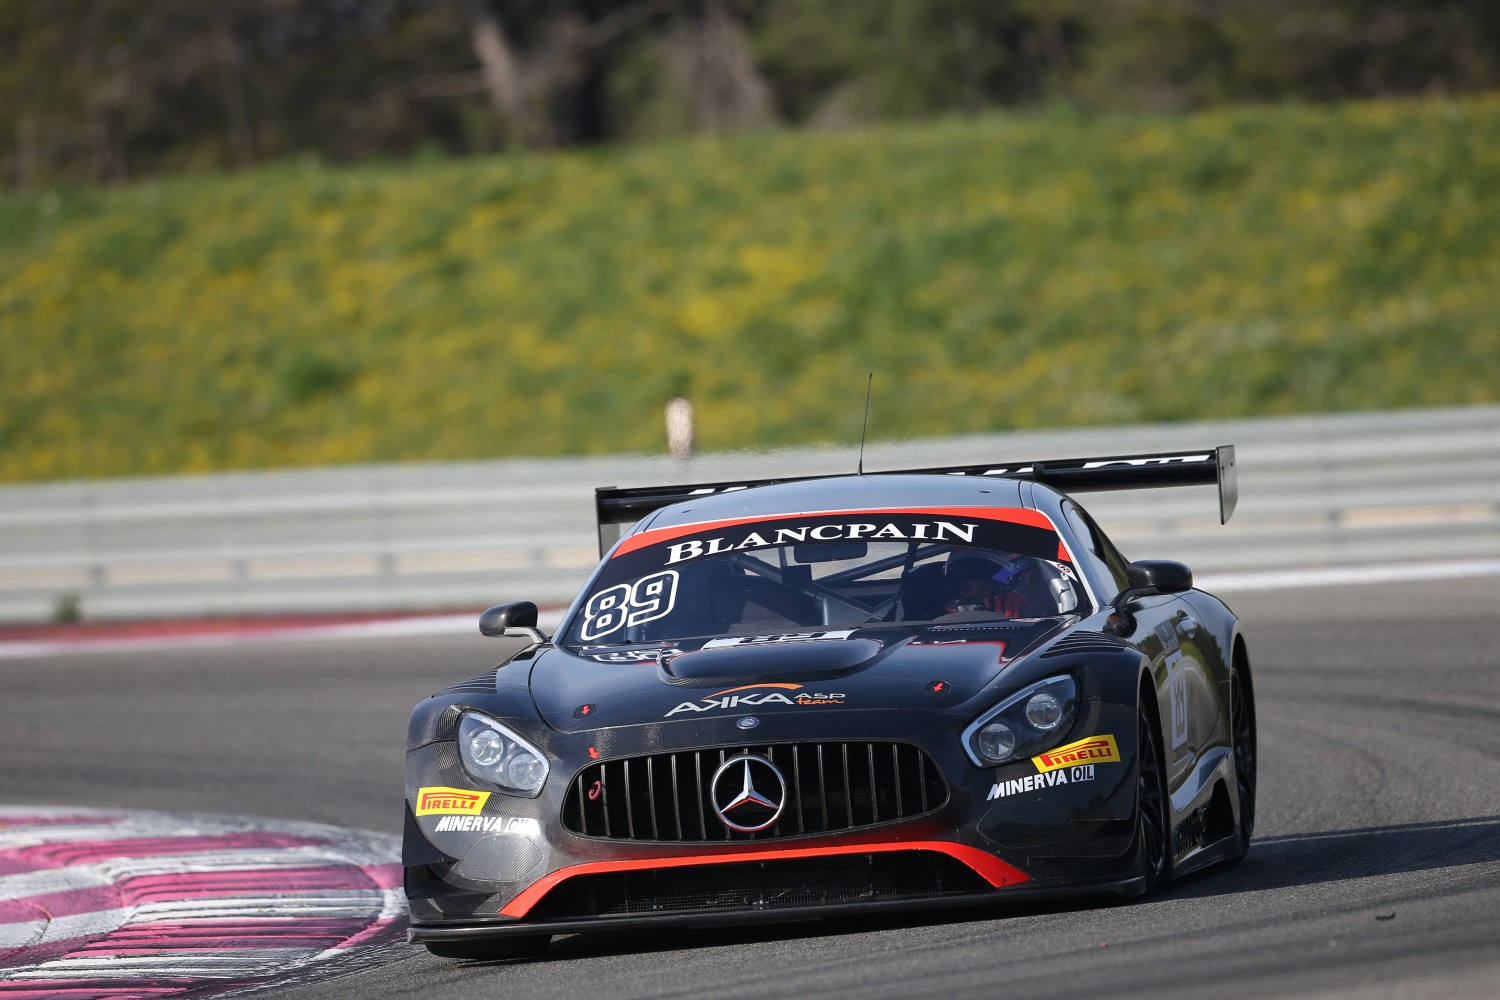 Mercedes-AMG fastest after two days of intensive testing